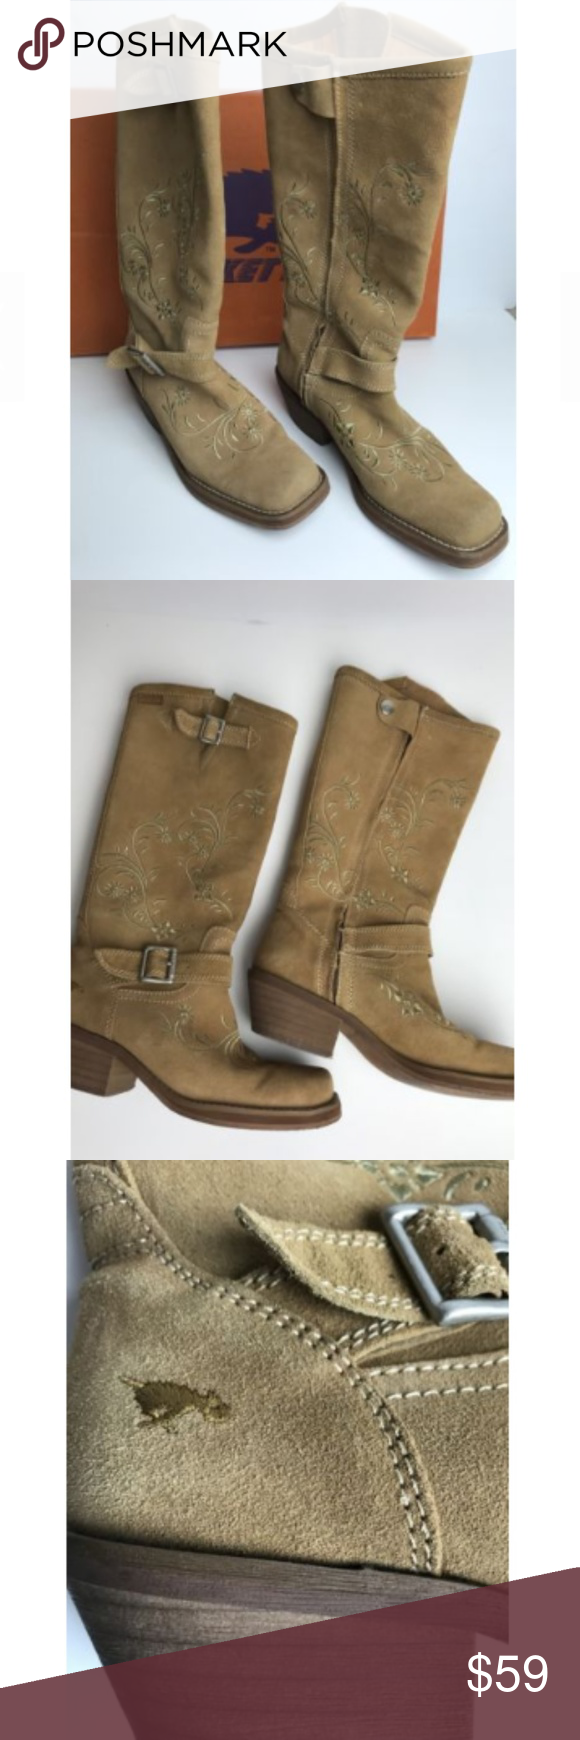 e18c6dde2e2 Rocket Dog Square Western Boots Rocket Dog Boots Womens Size 7.5 ...